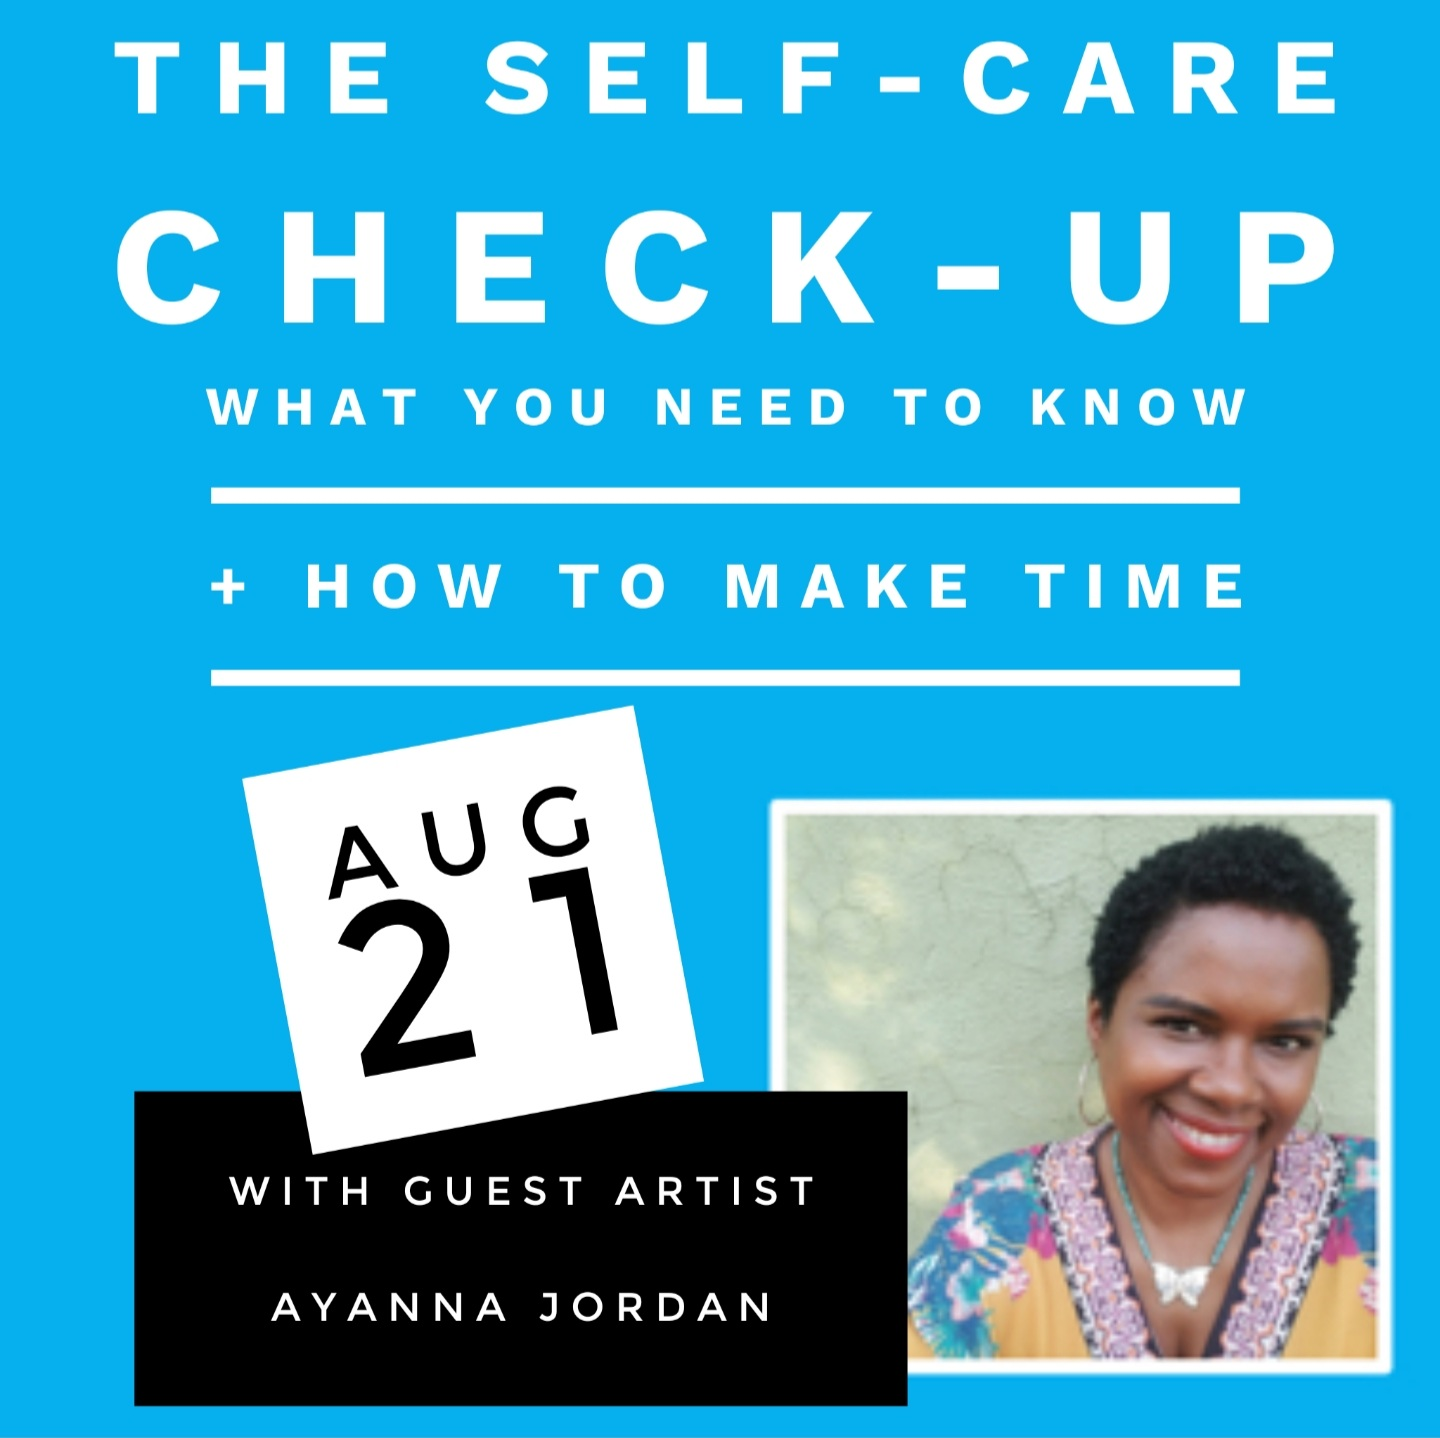 Self-Care Check-Up Image